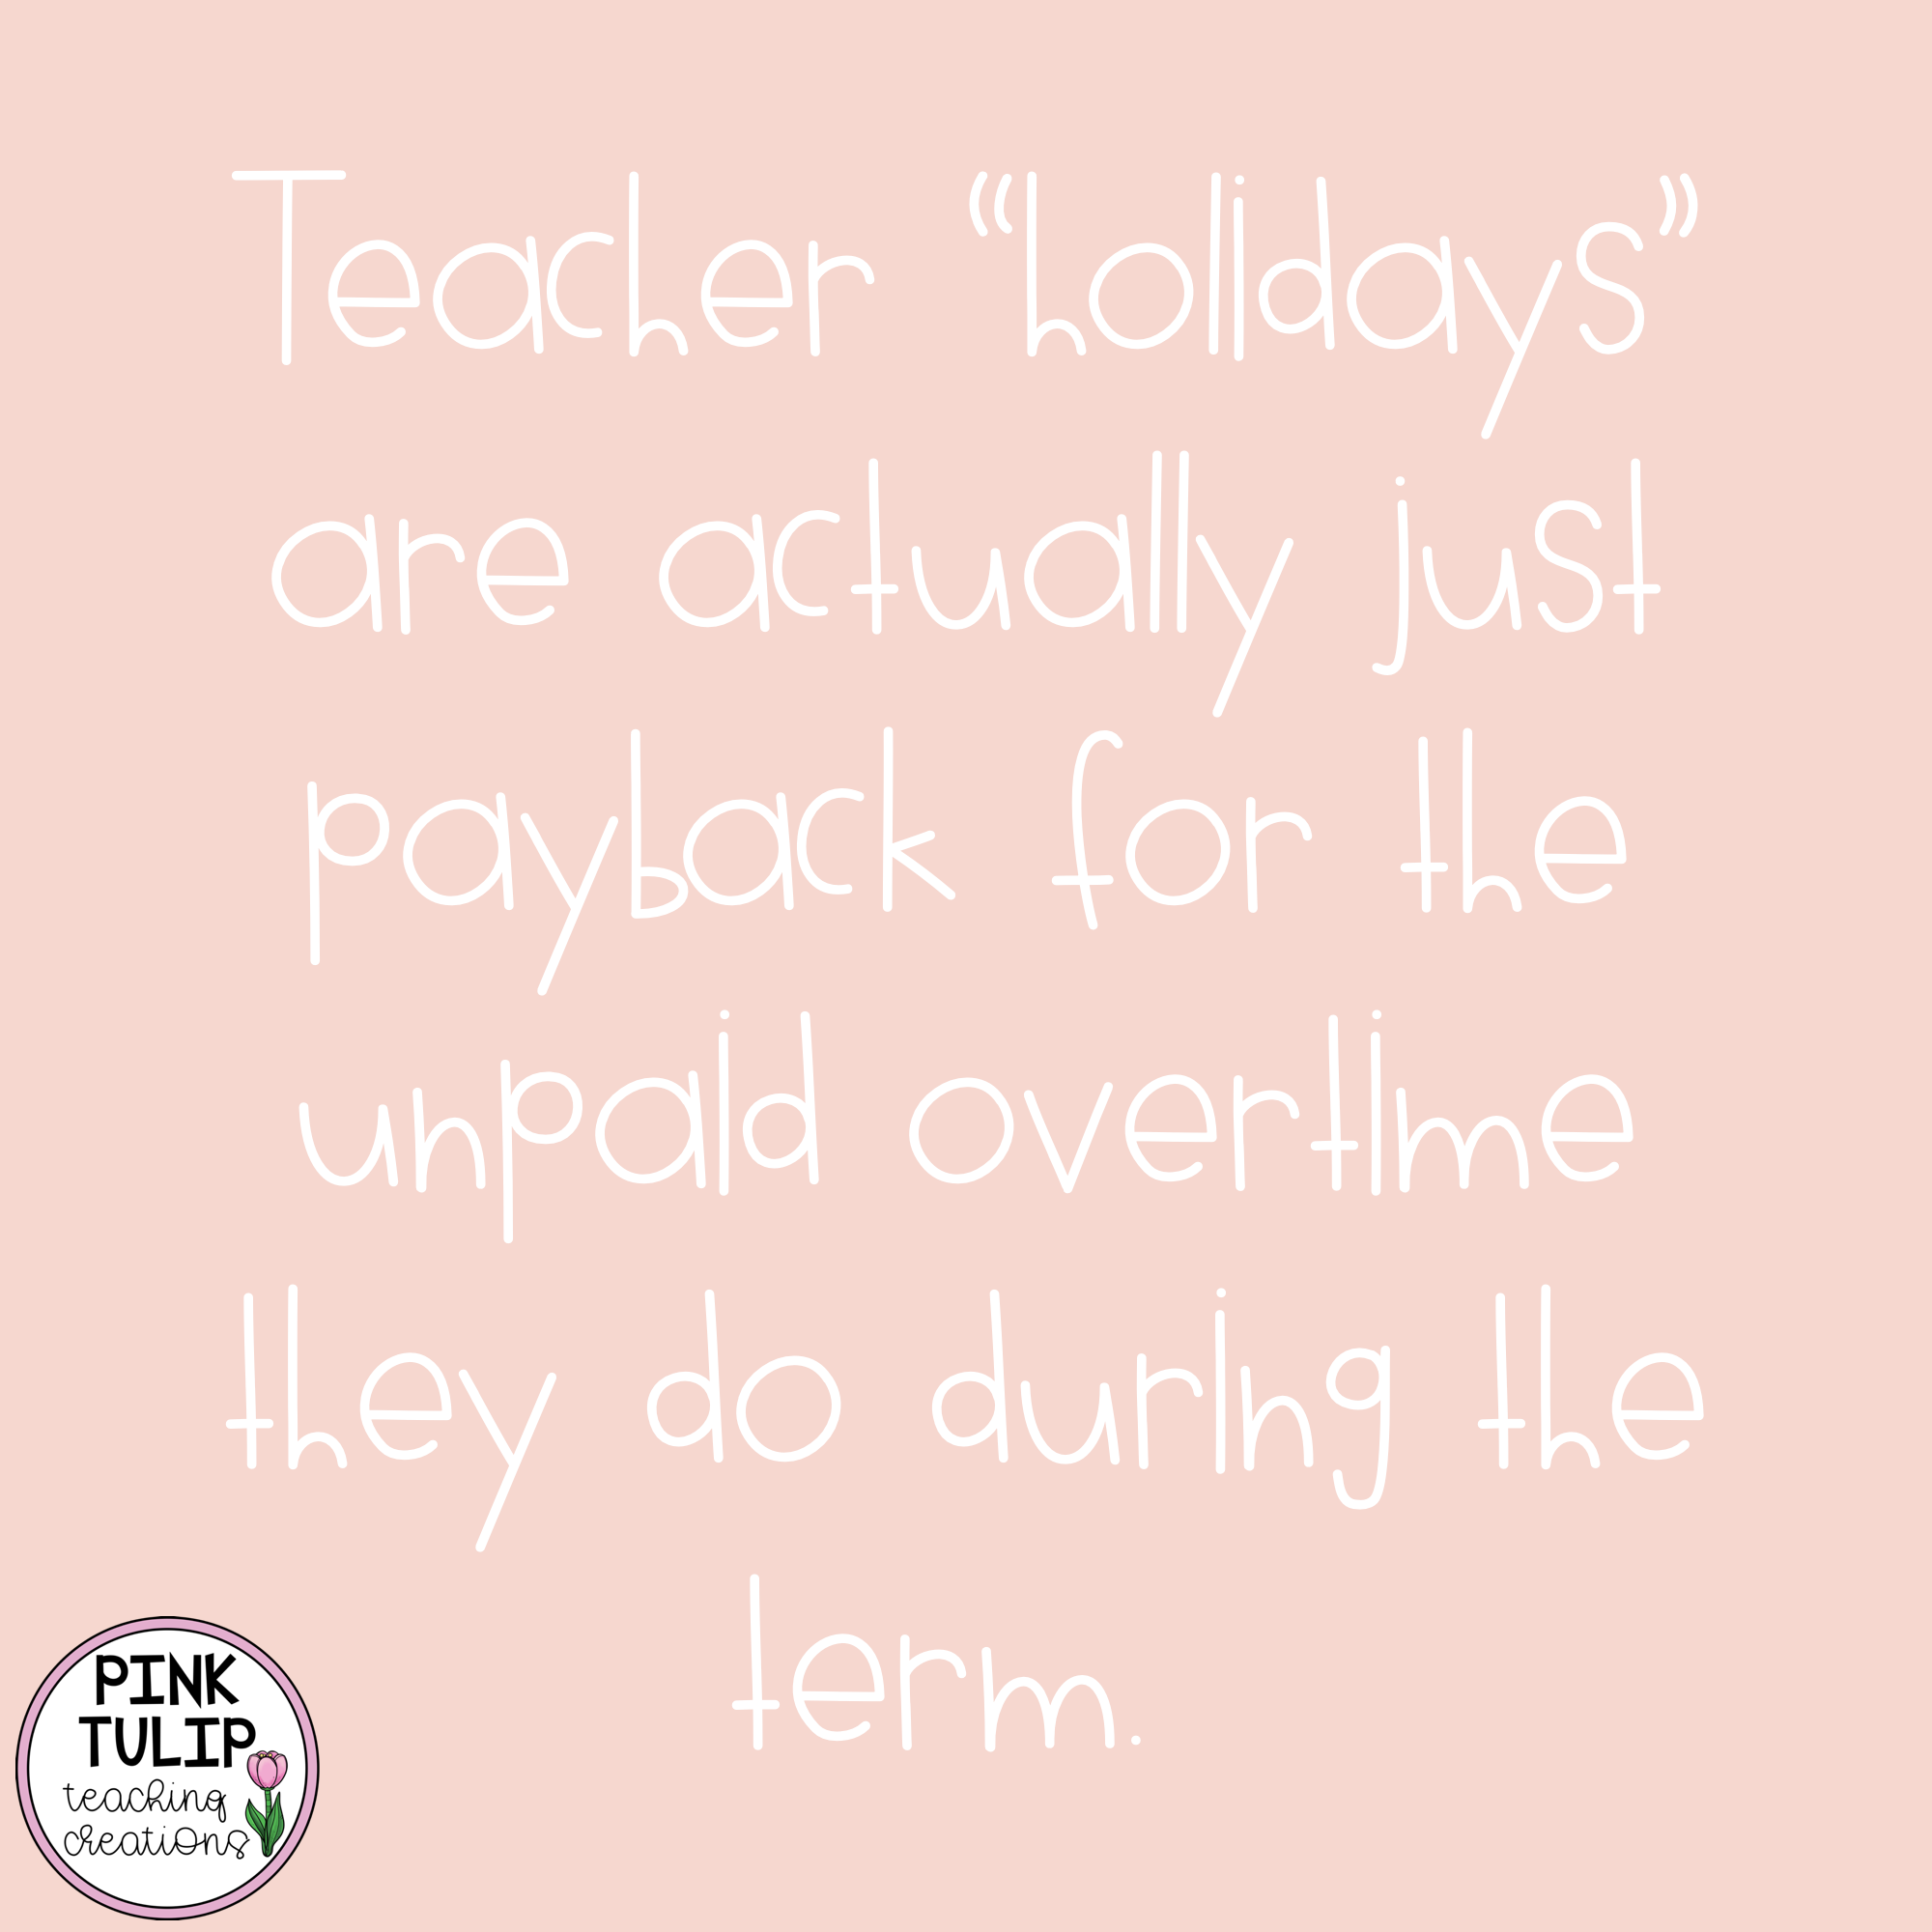 Teacher Holidays Are Actually Just Payback For The